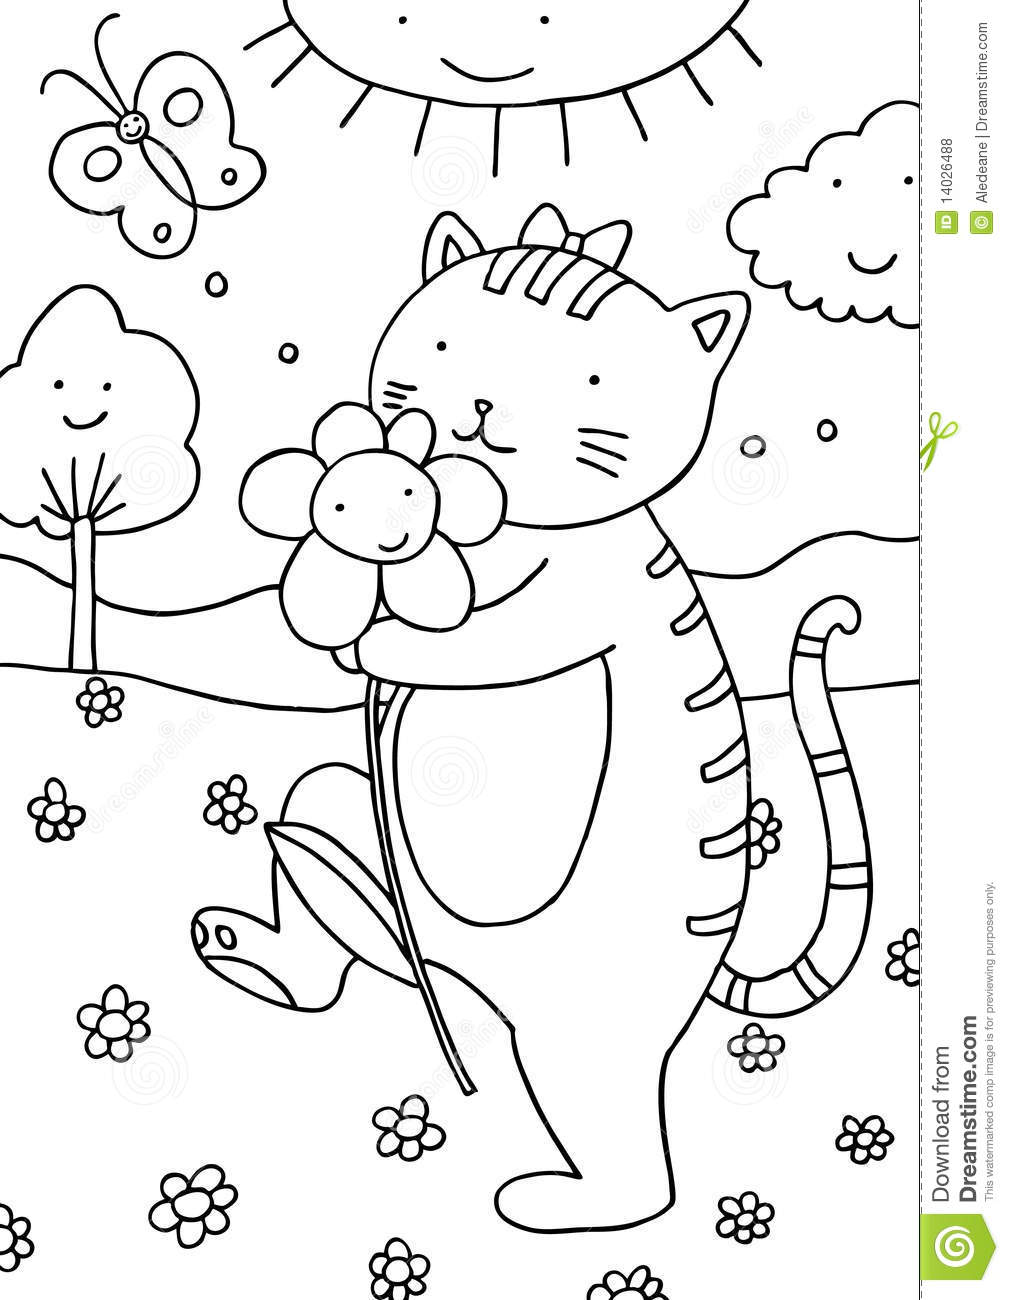 cat outdoors coloring page royalty free stock photos image 14026488